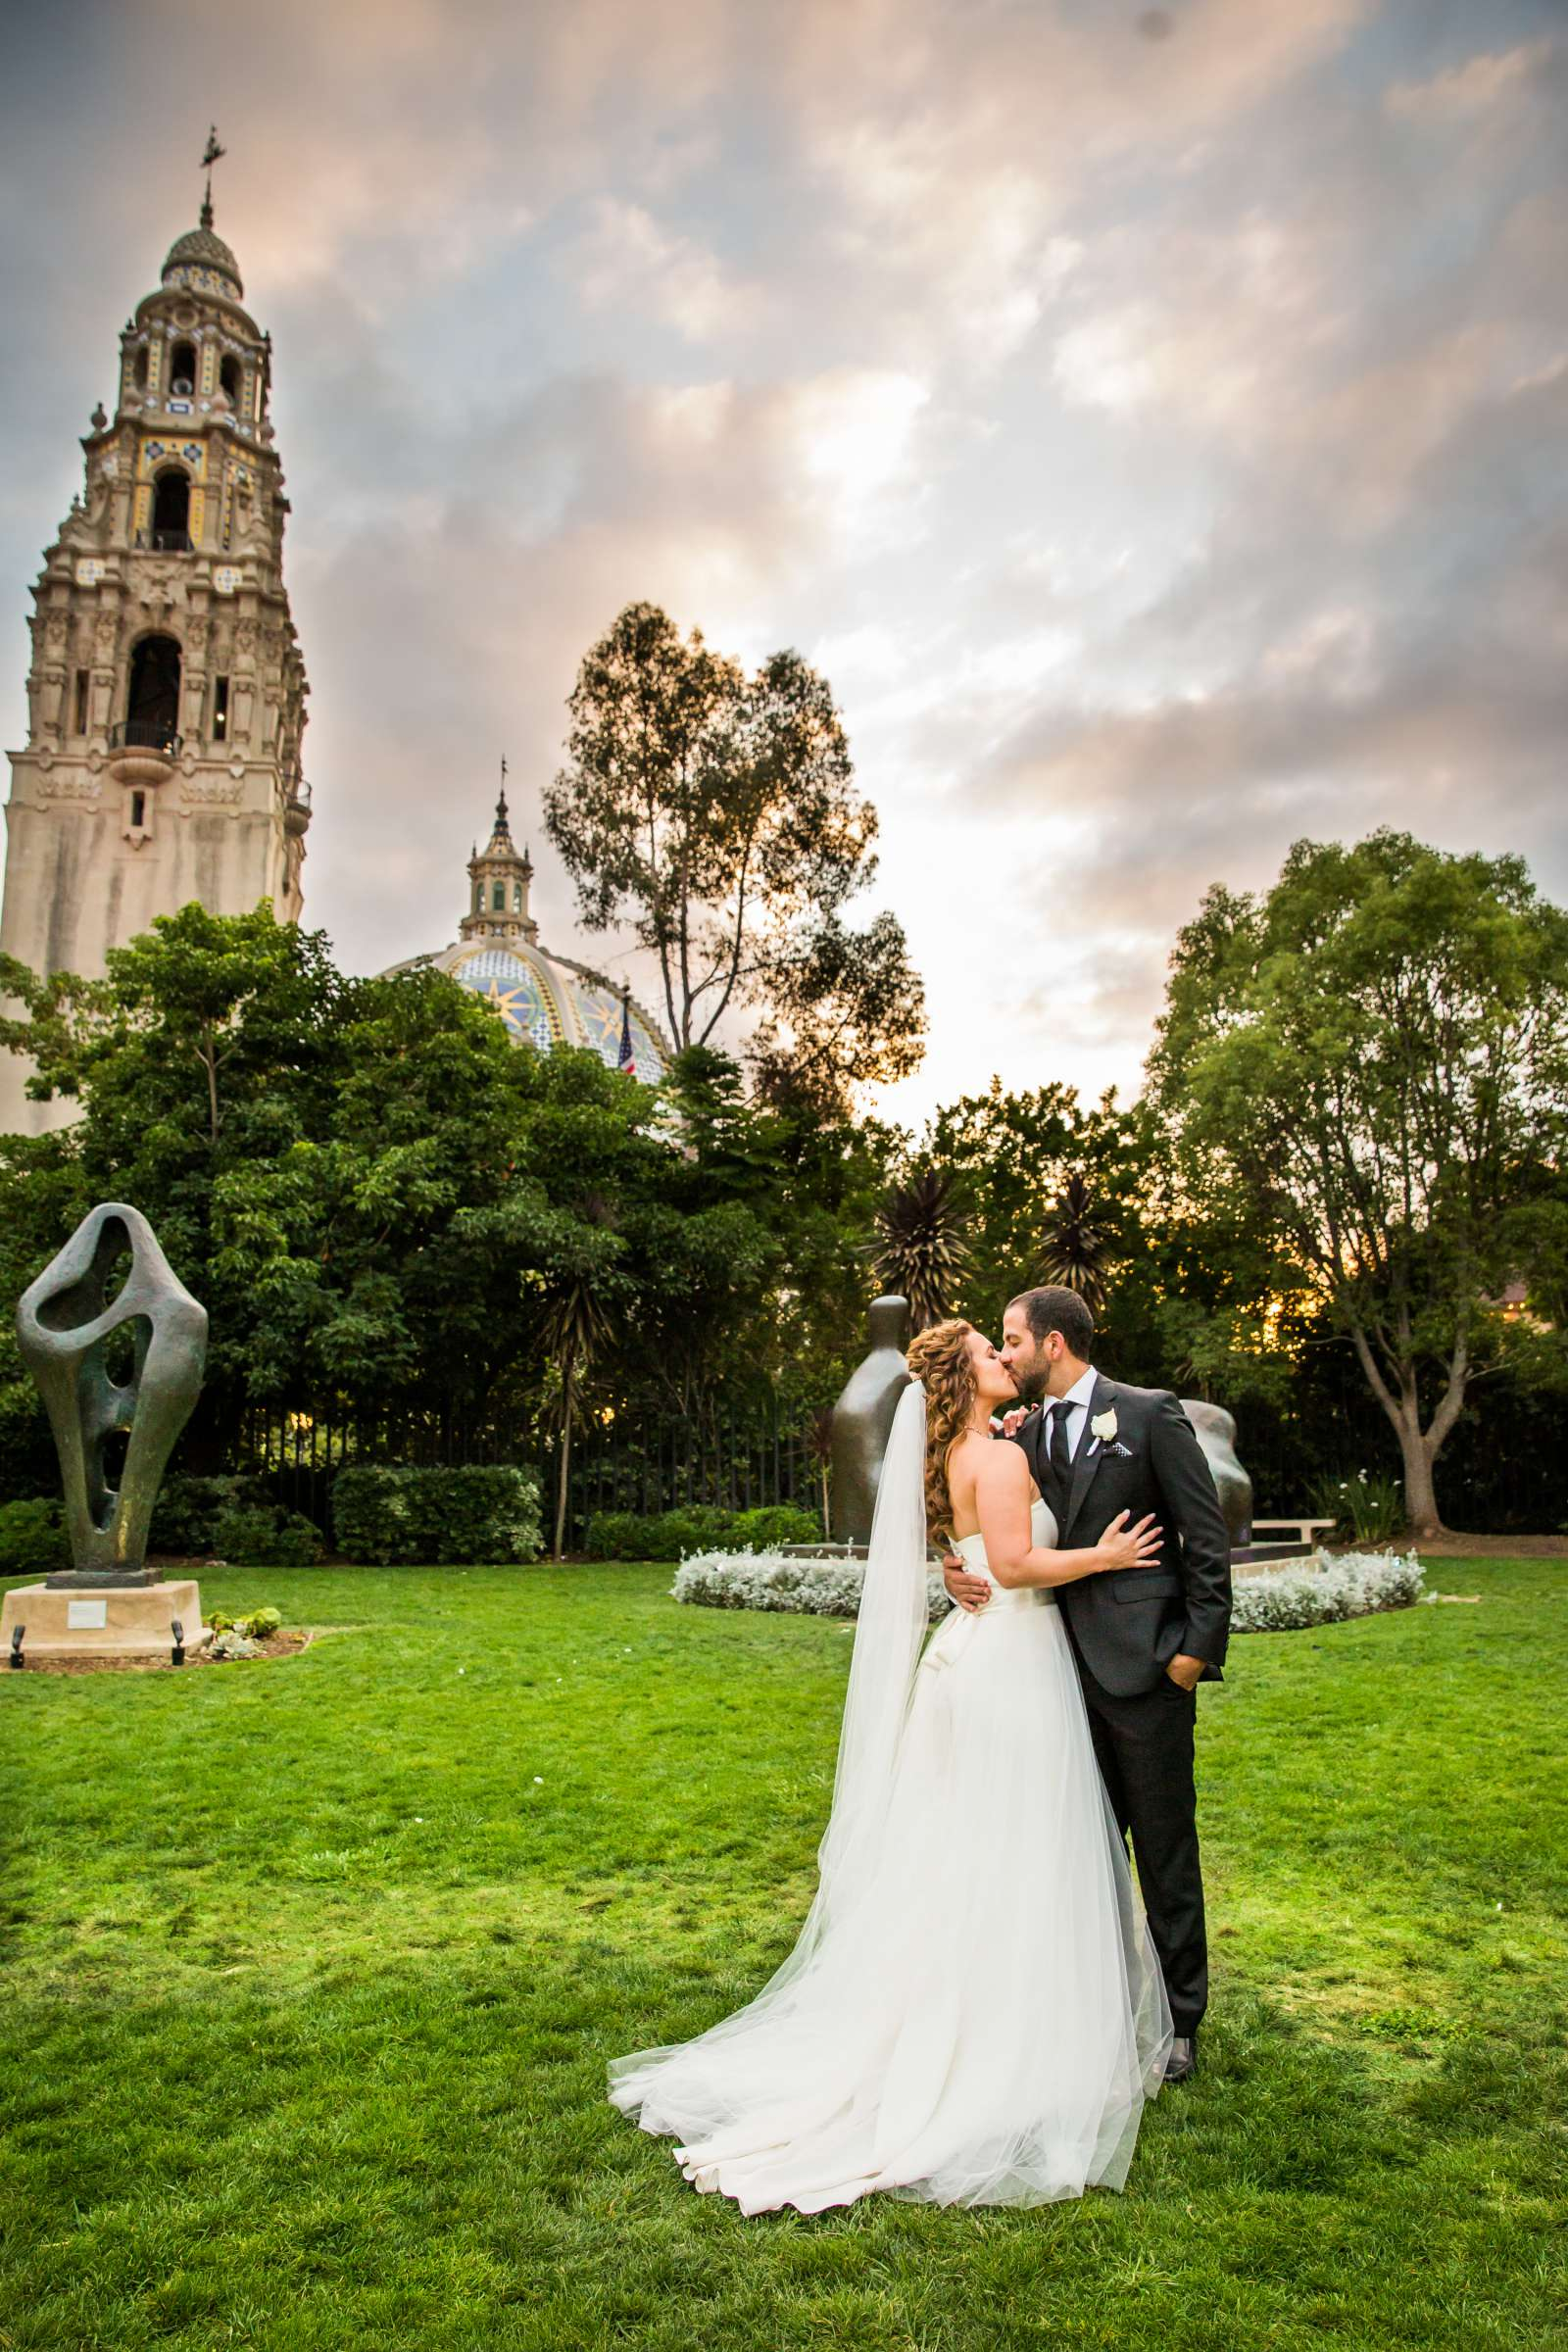 San Diego Museum of Art Wedding coordinated by First Comes Love Weddings & Events, Ruthie and Larry Wedding Photo #236832 by True Photography